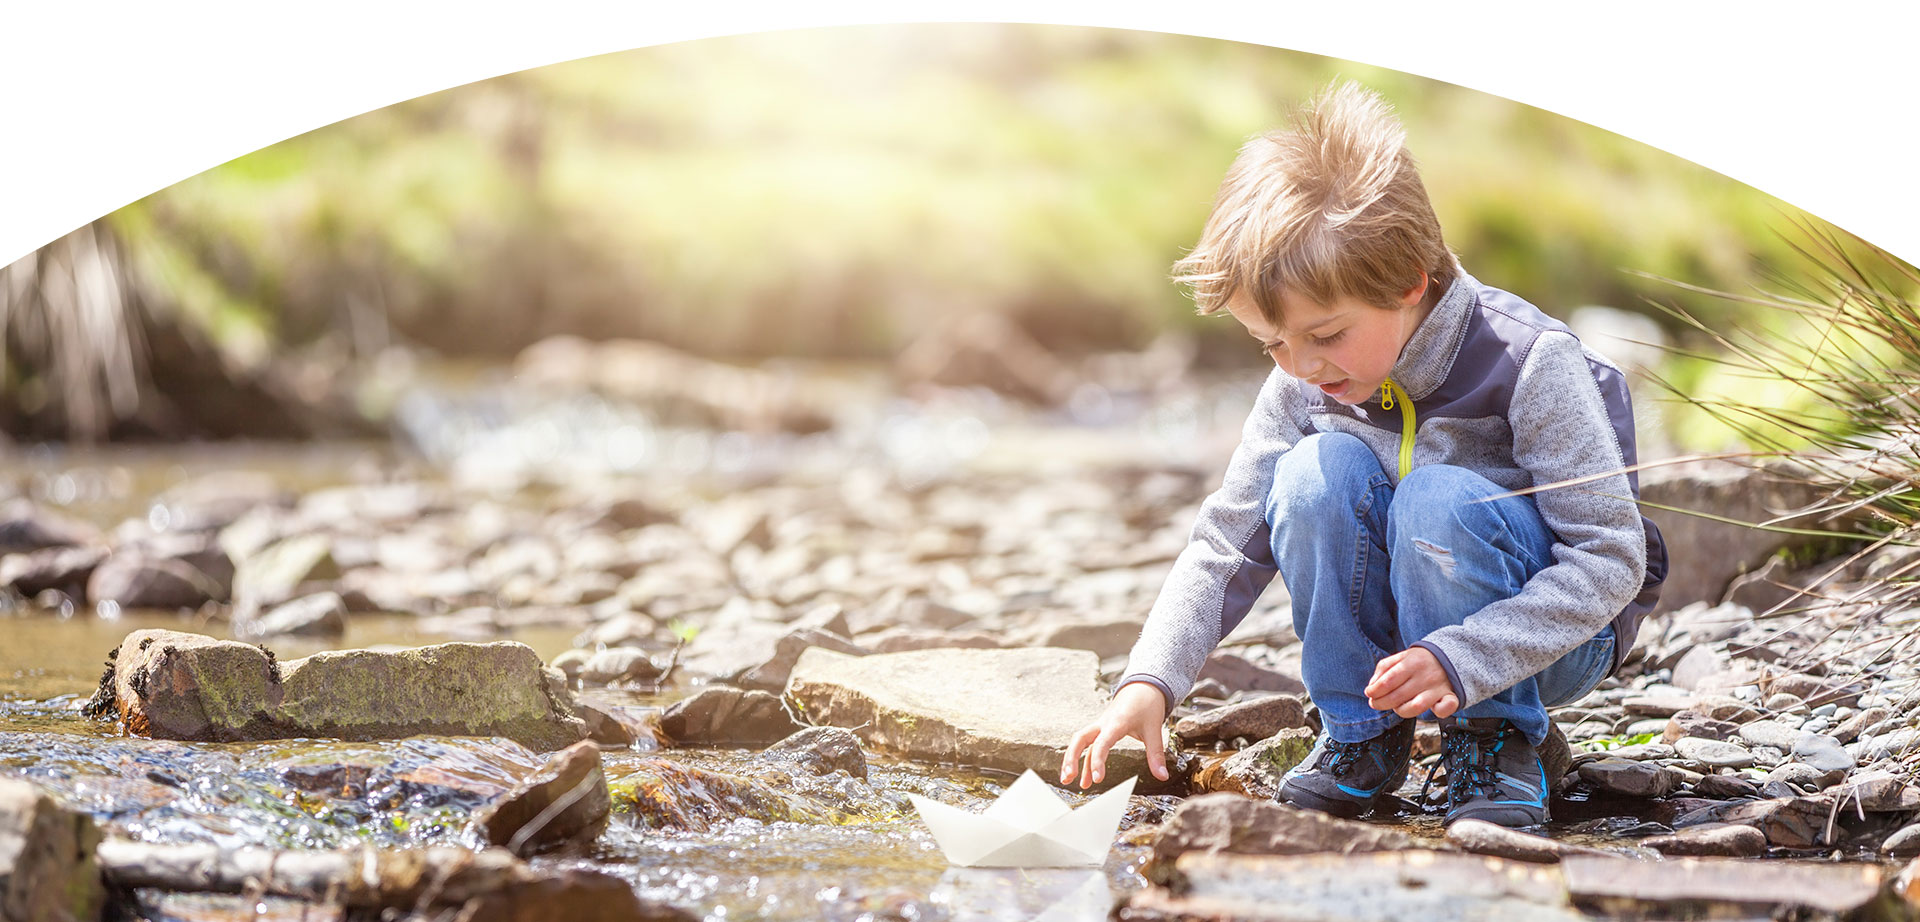 Boy sailing a paper boat in the creek